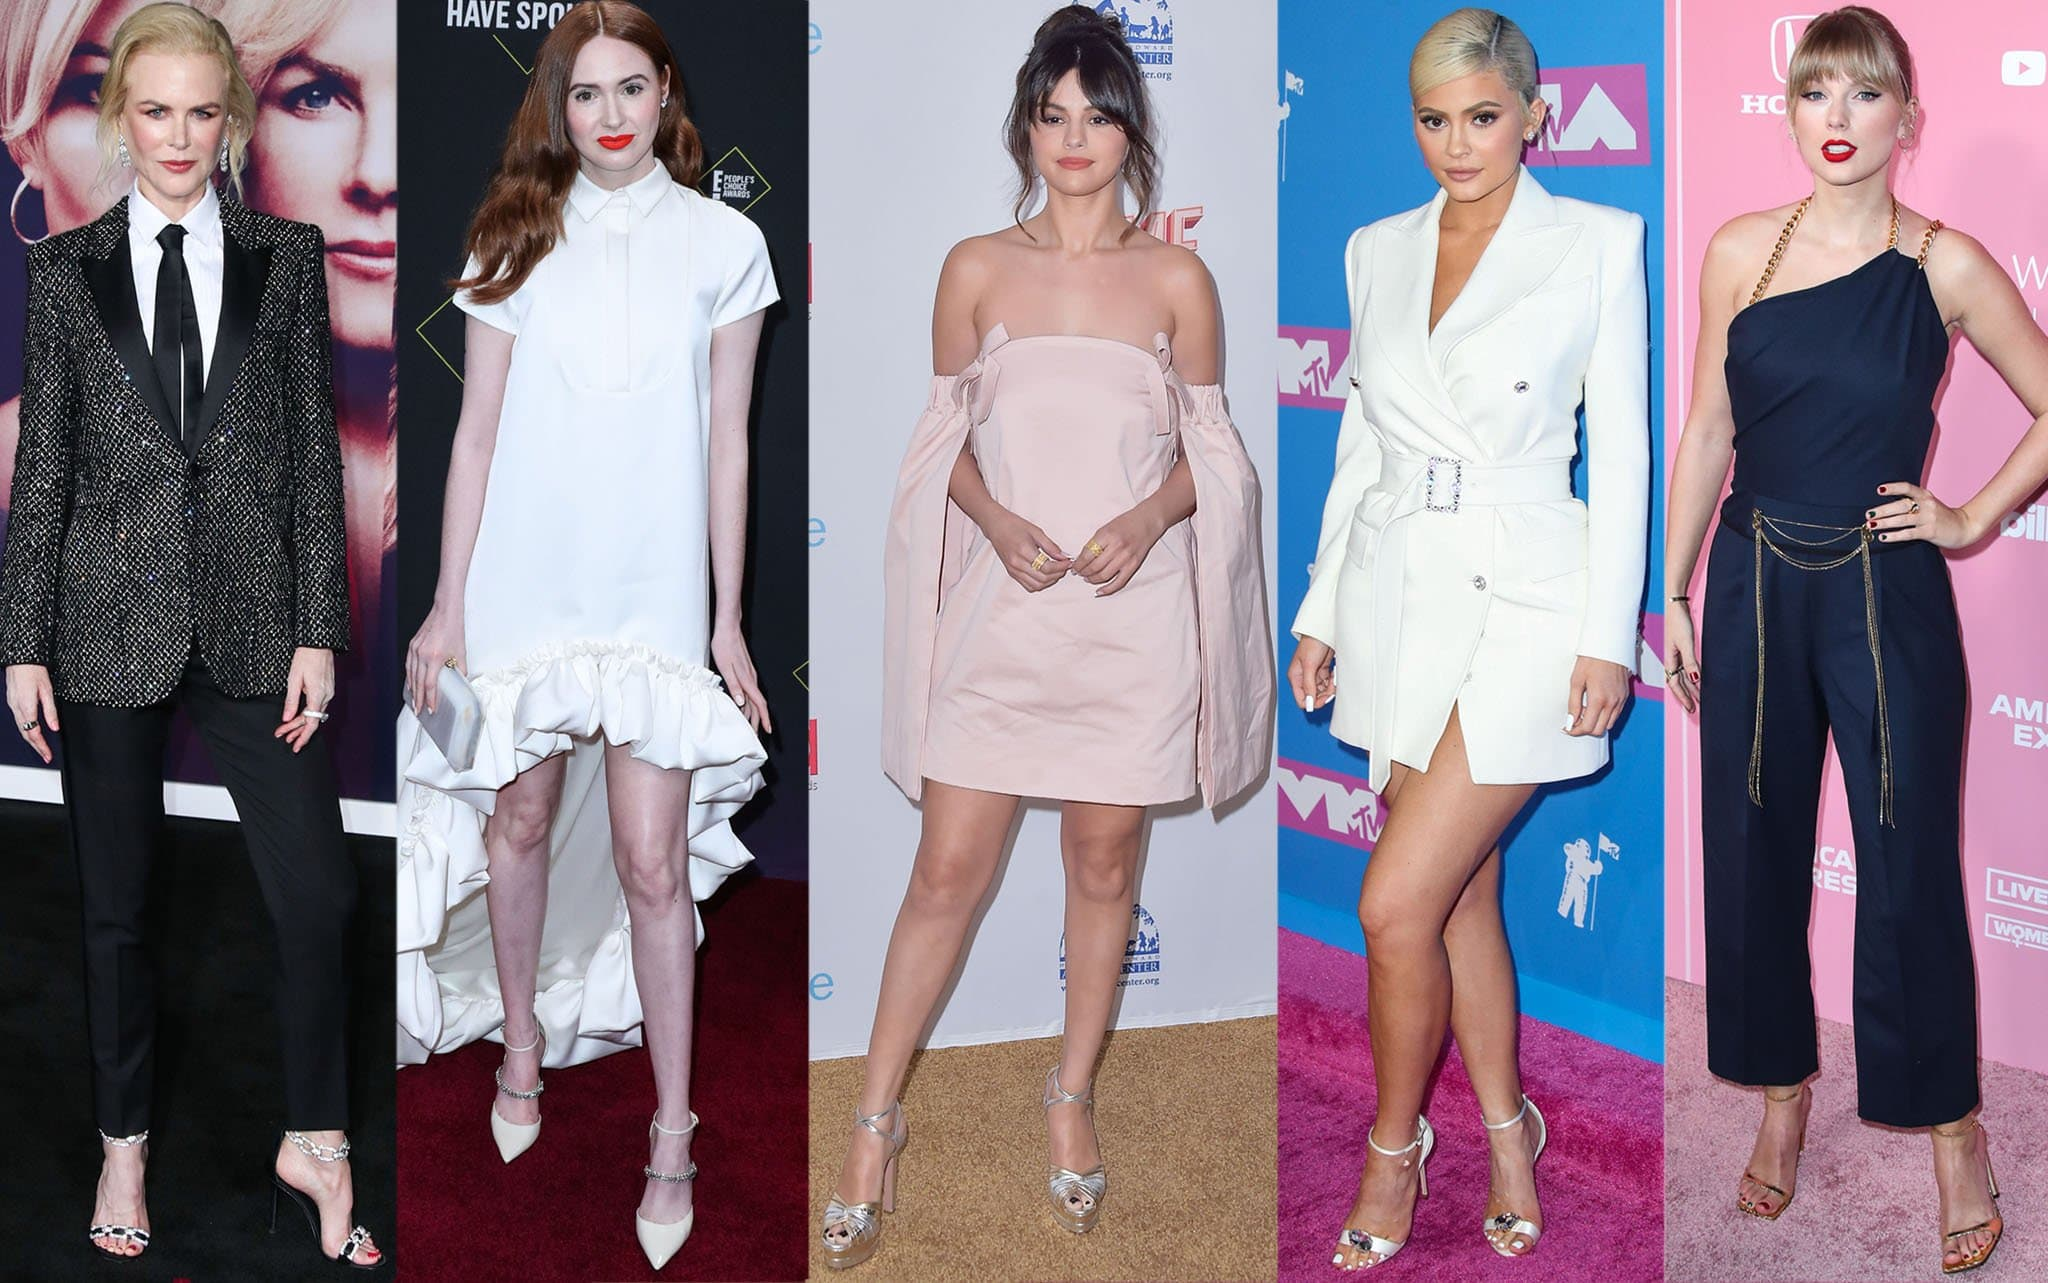 Nicole Kidman, Karen Gillan, Selena Gomez, Kylie Jenner, and Taylor Swift show how to wear ankle strap sandals to avoid looking shorter